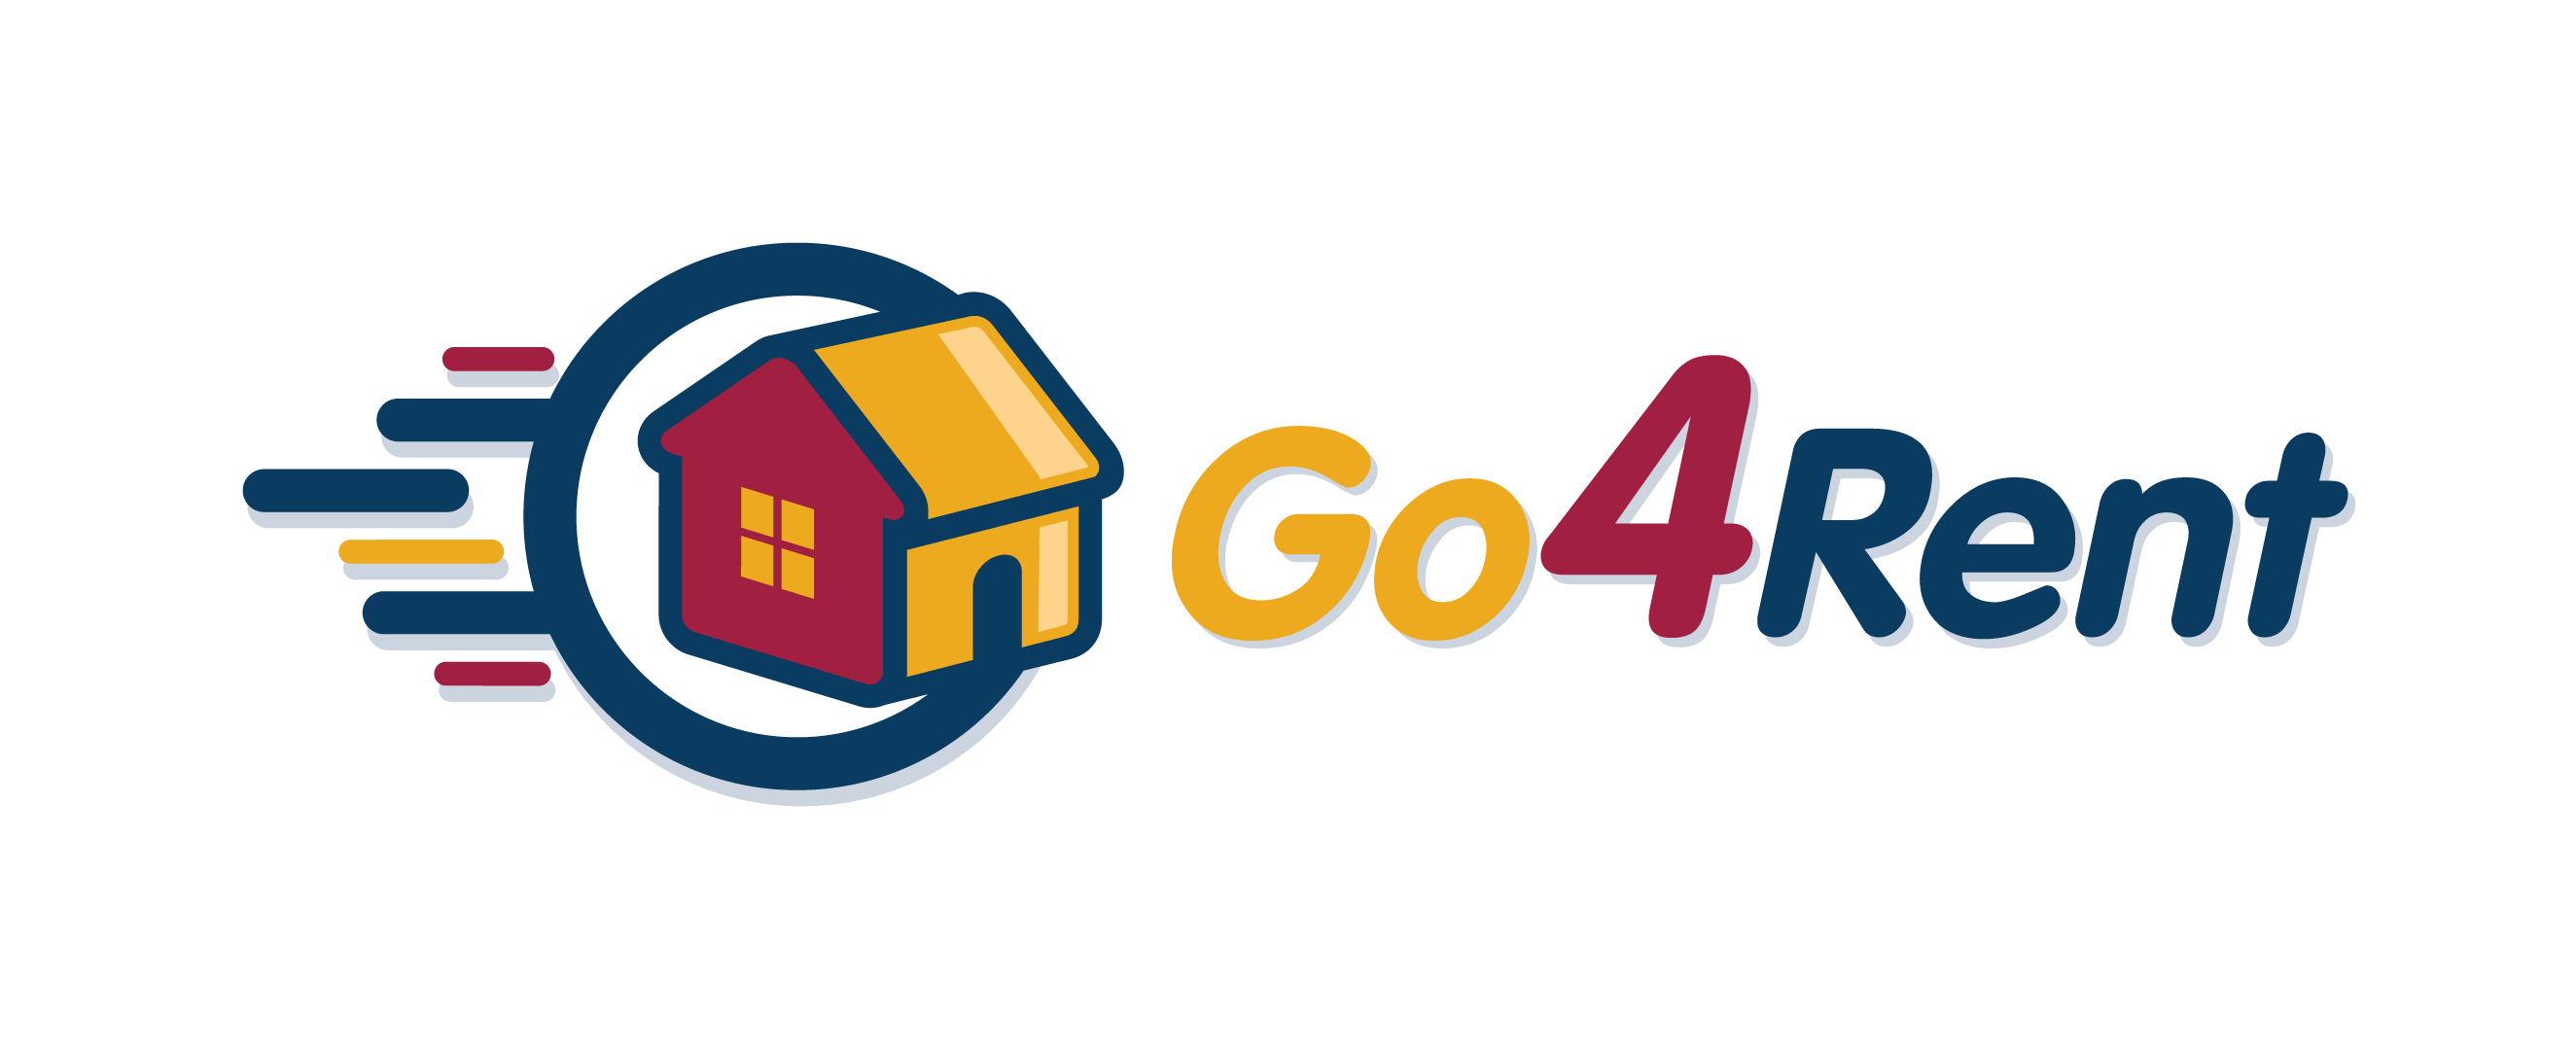 Go4Rent_Logos_ColorHoriz